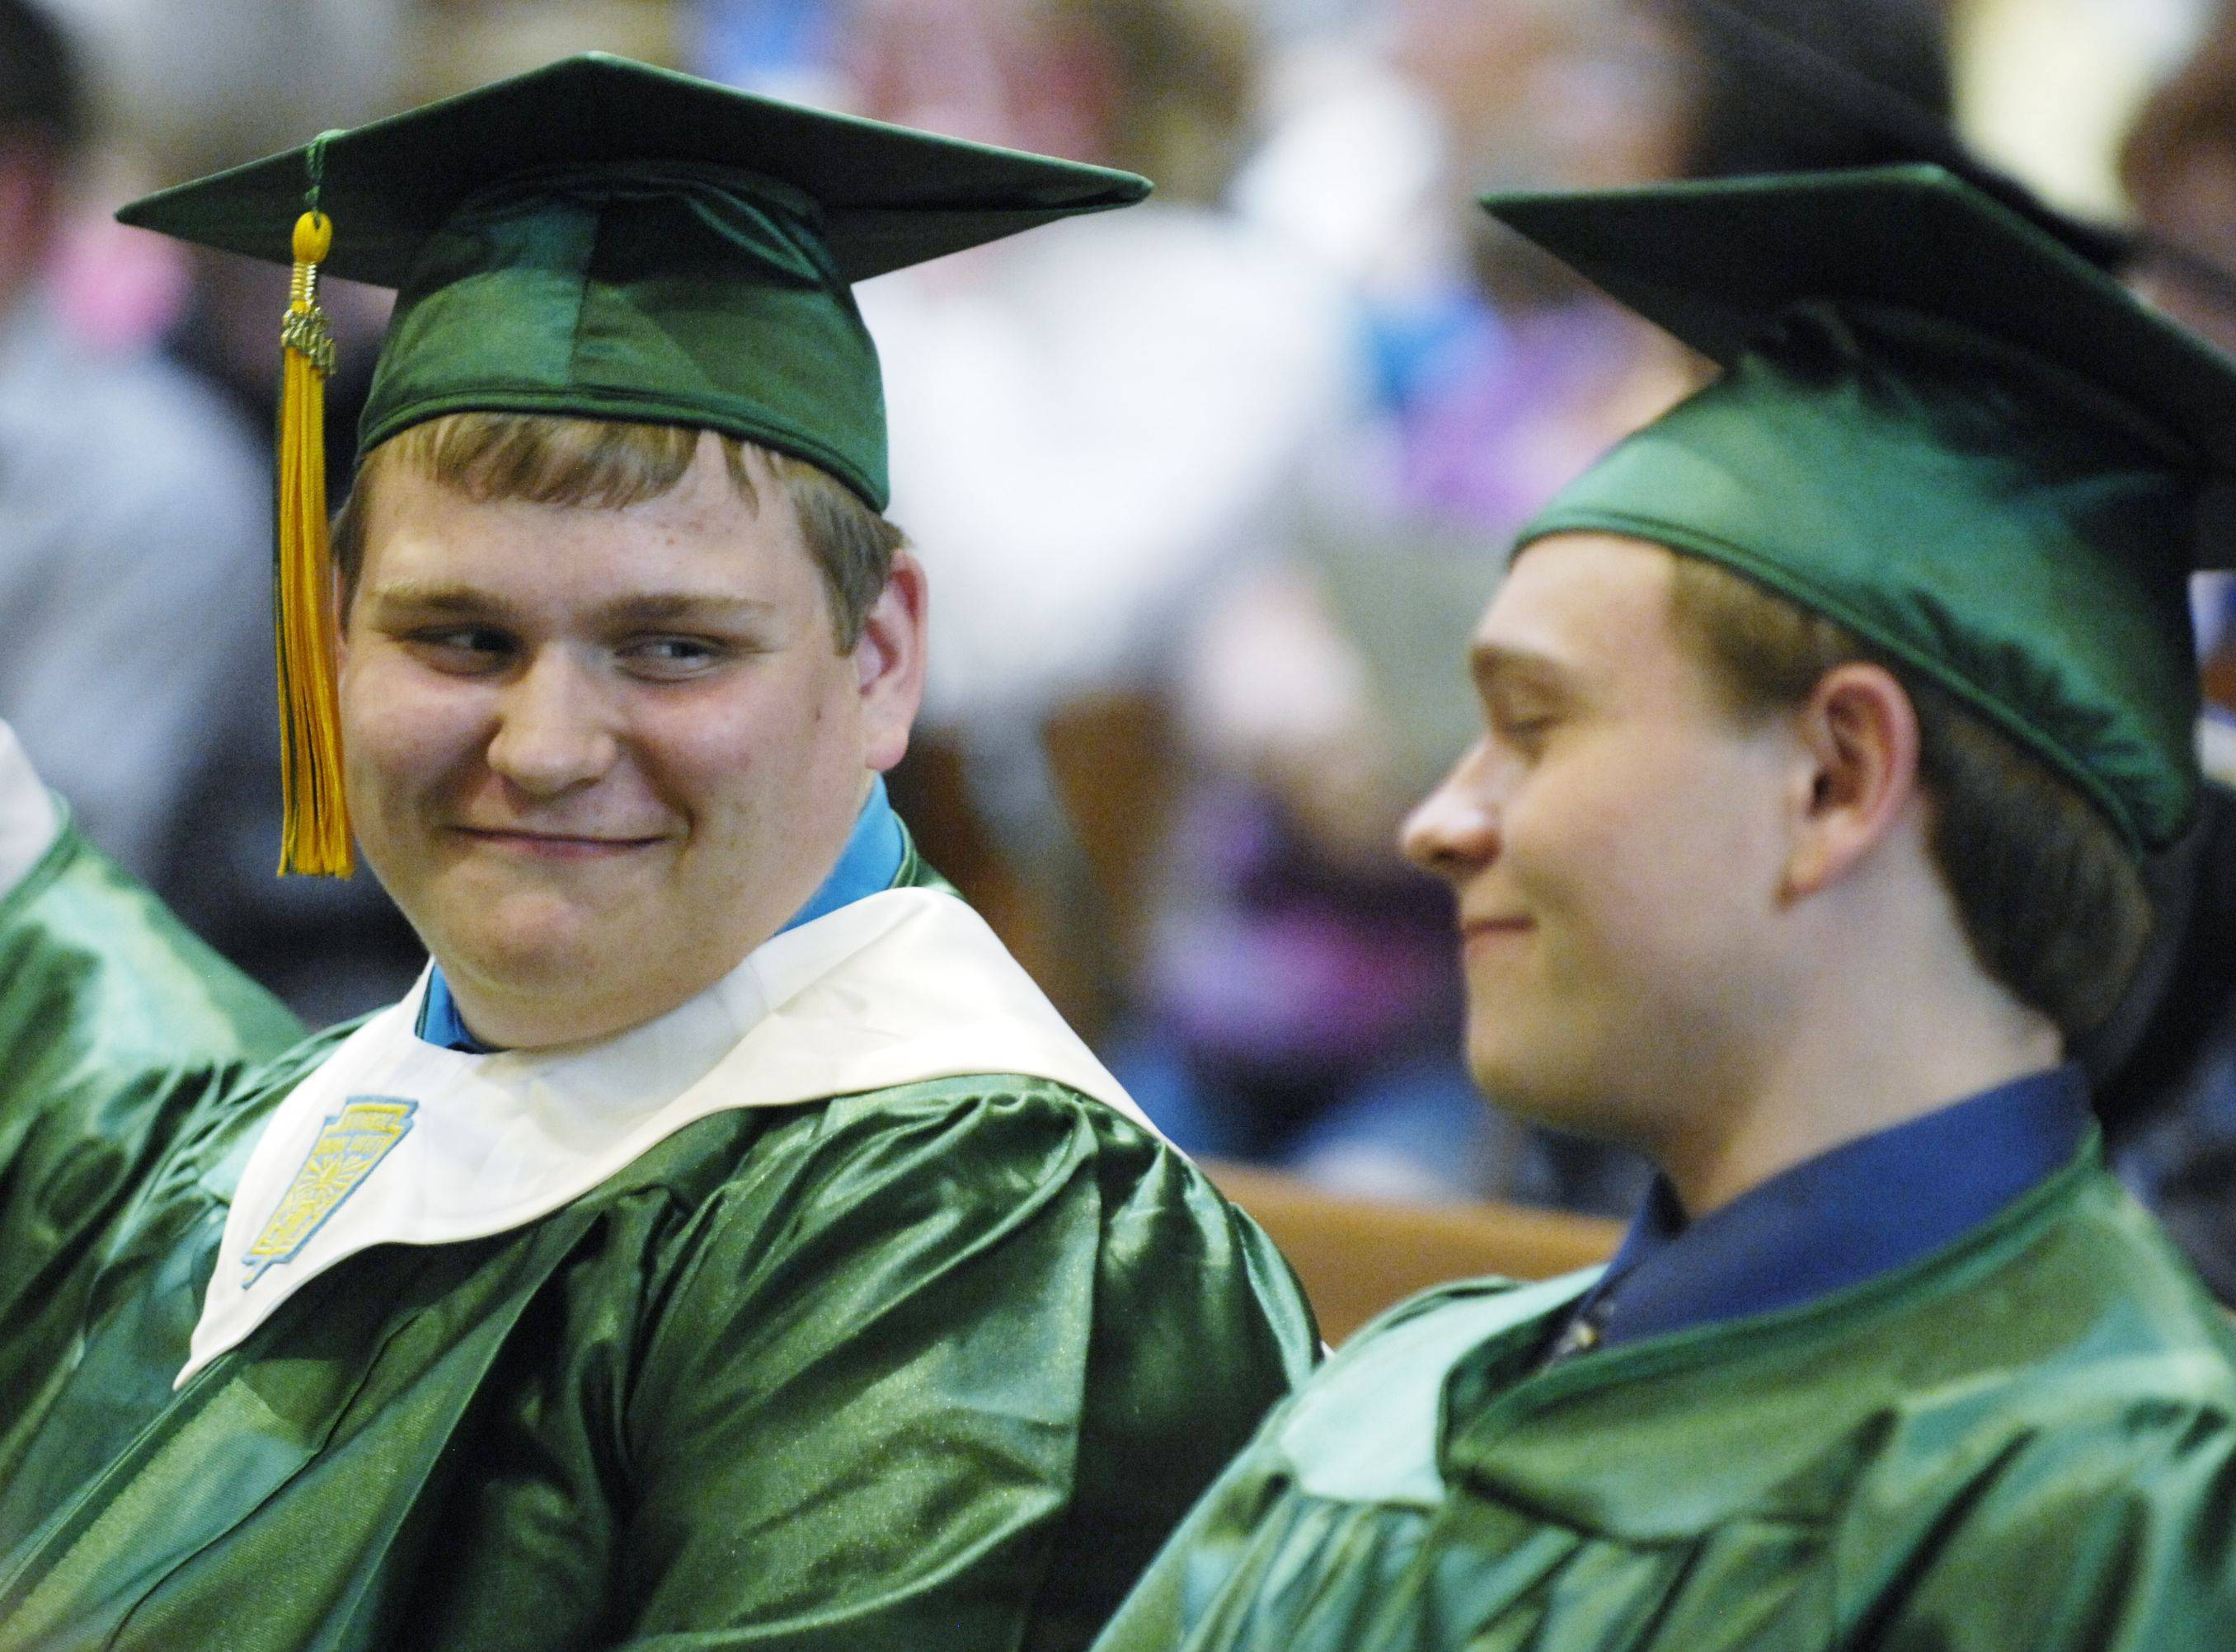 Graduates Zachary Trisilla, left, and Jeffrey Tschumper, share a moment of pride during Elgin's St. Edward Central Catholic High School Class of 2011 graduation ceremony Tuesday at St. Patrick Church in St. Charles.